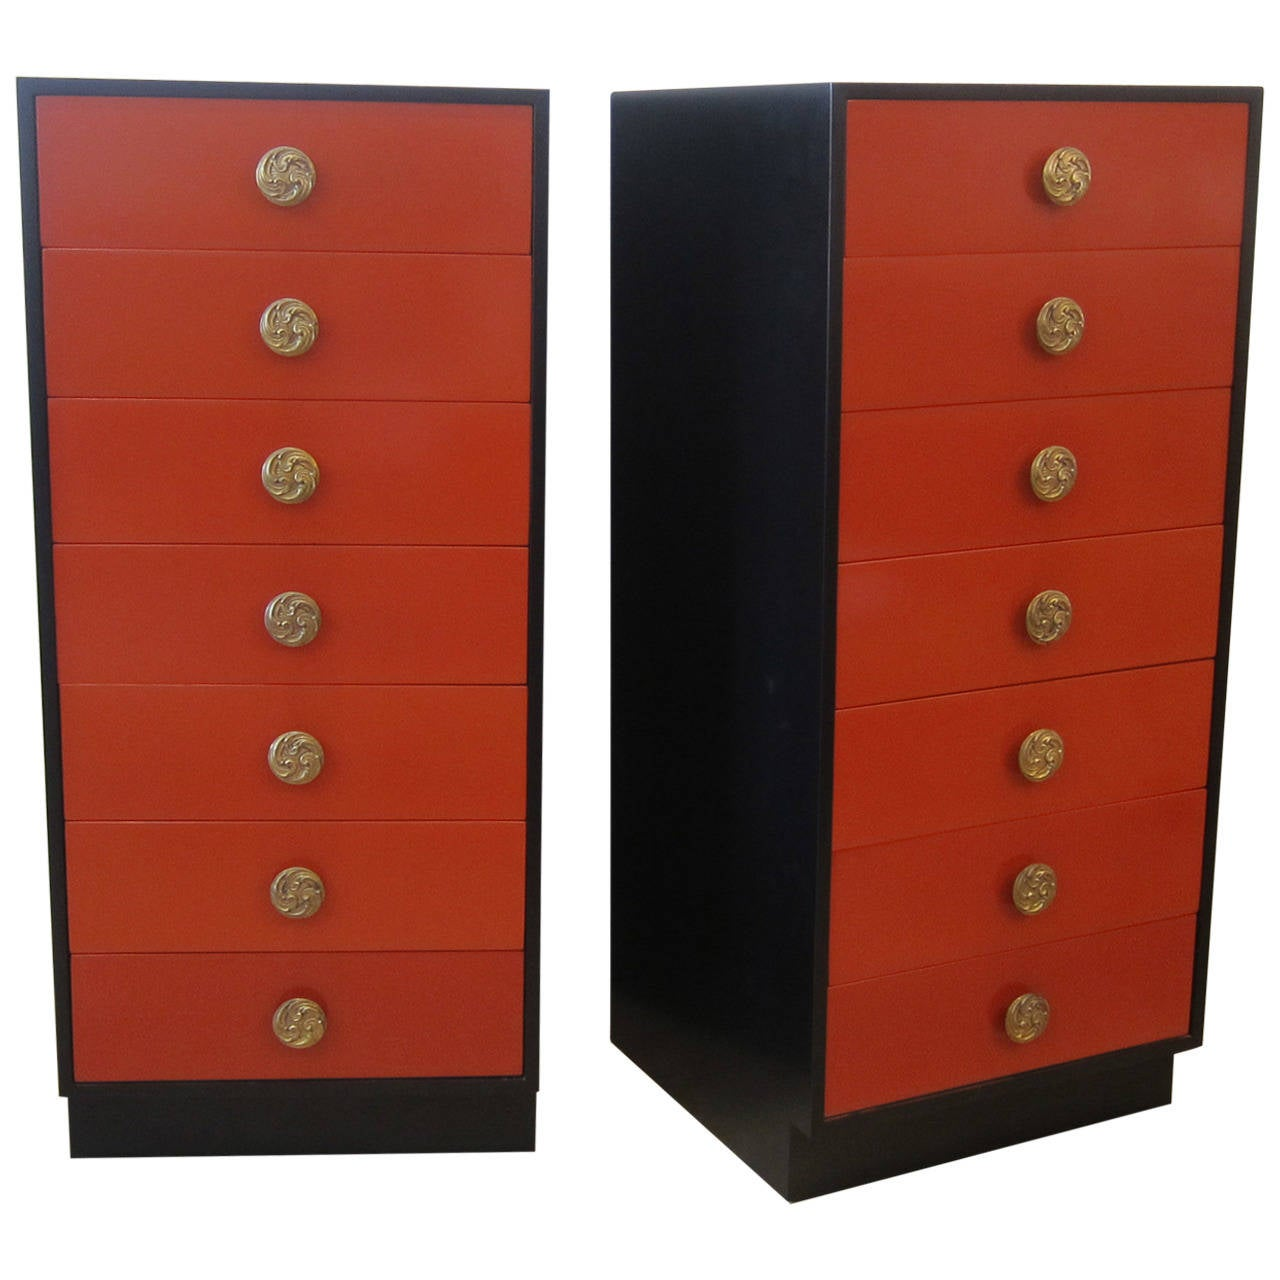 Pair Of Tall Lingerie Chest Of Drawers At 1stdibs